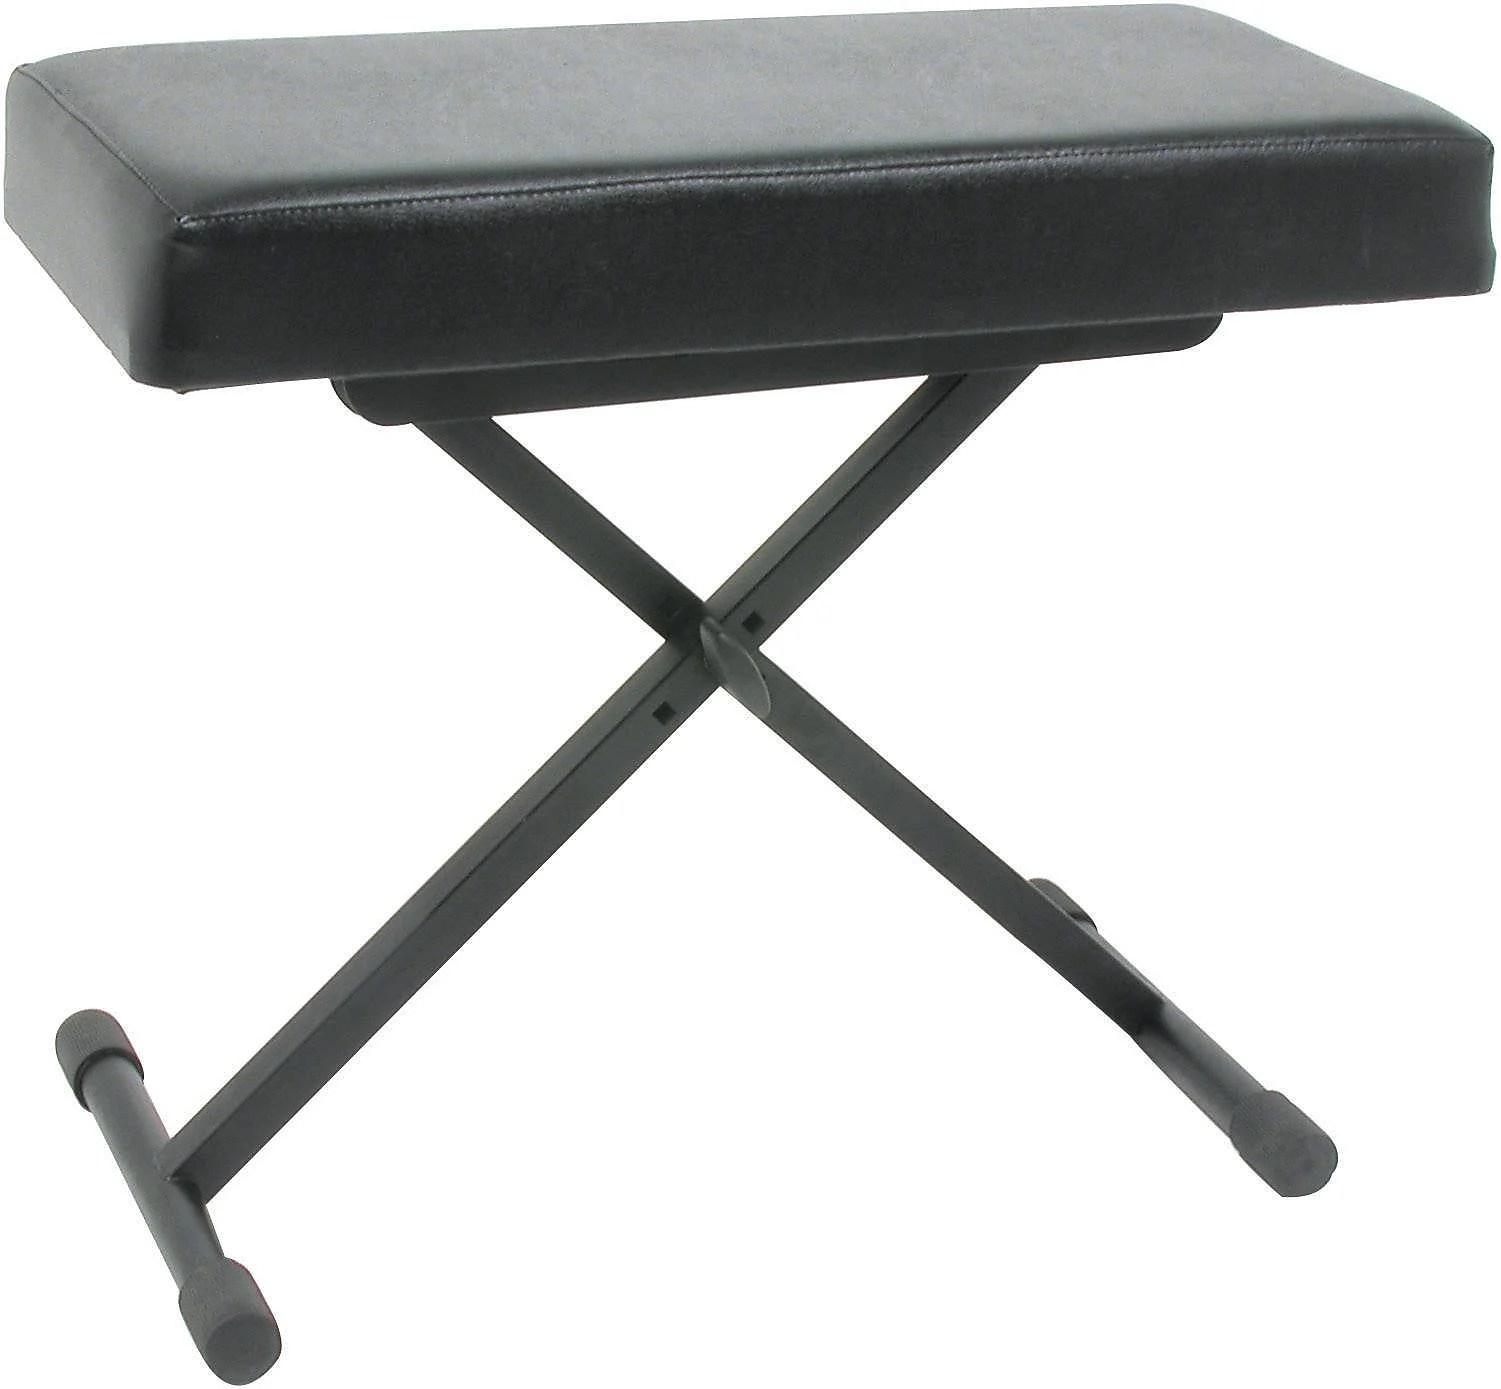 Quik Lok Bx 8 Deluxe Keyboard Piano Bench With Extra Thick Cushion